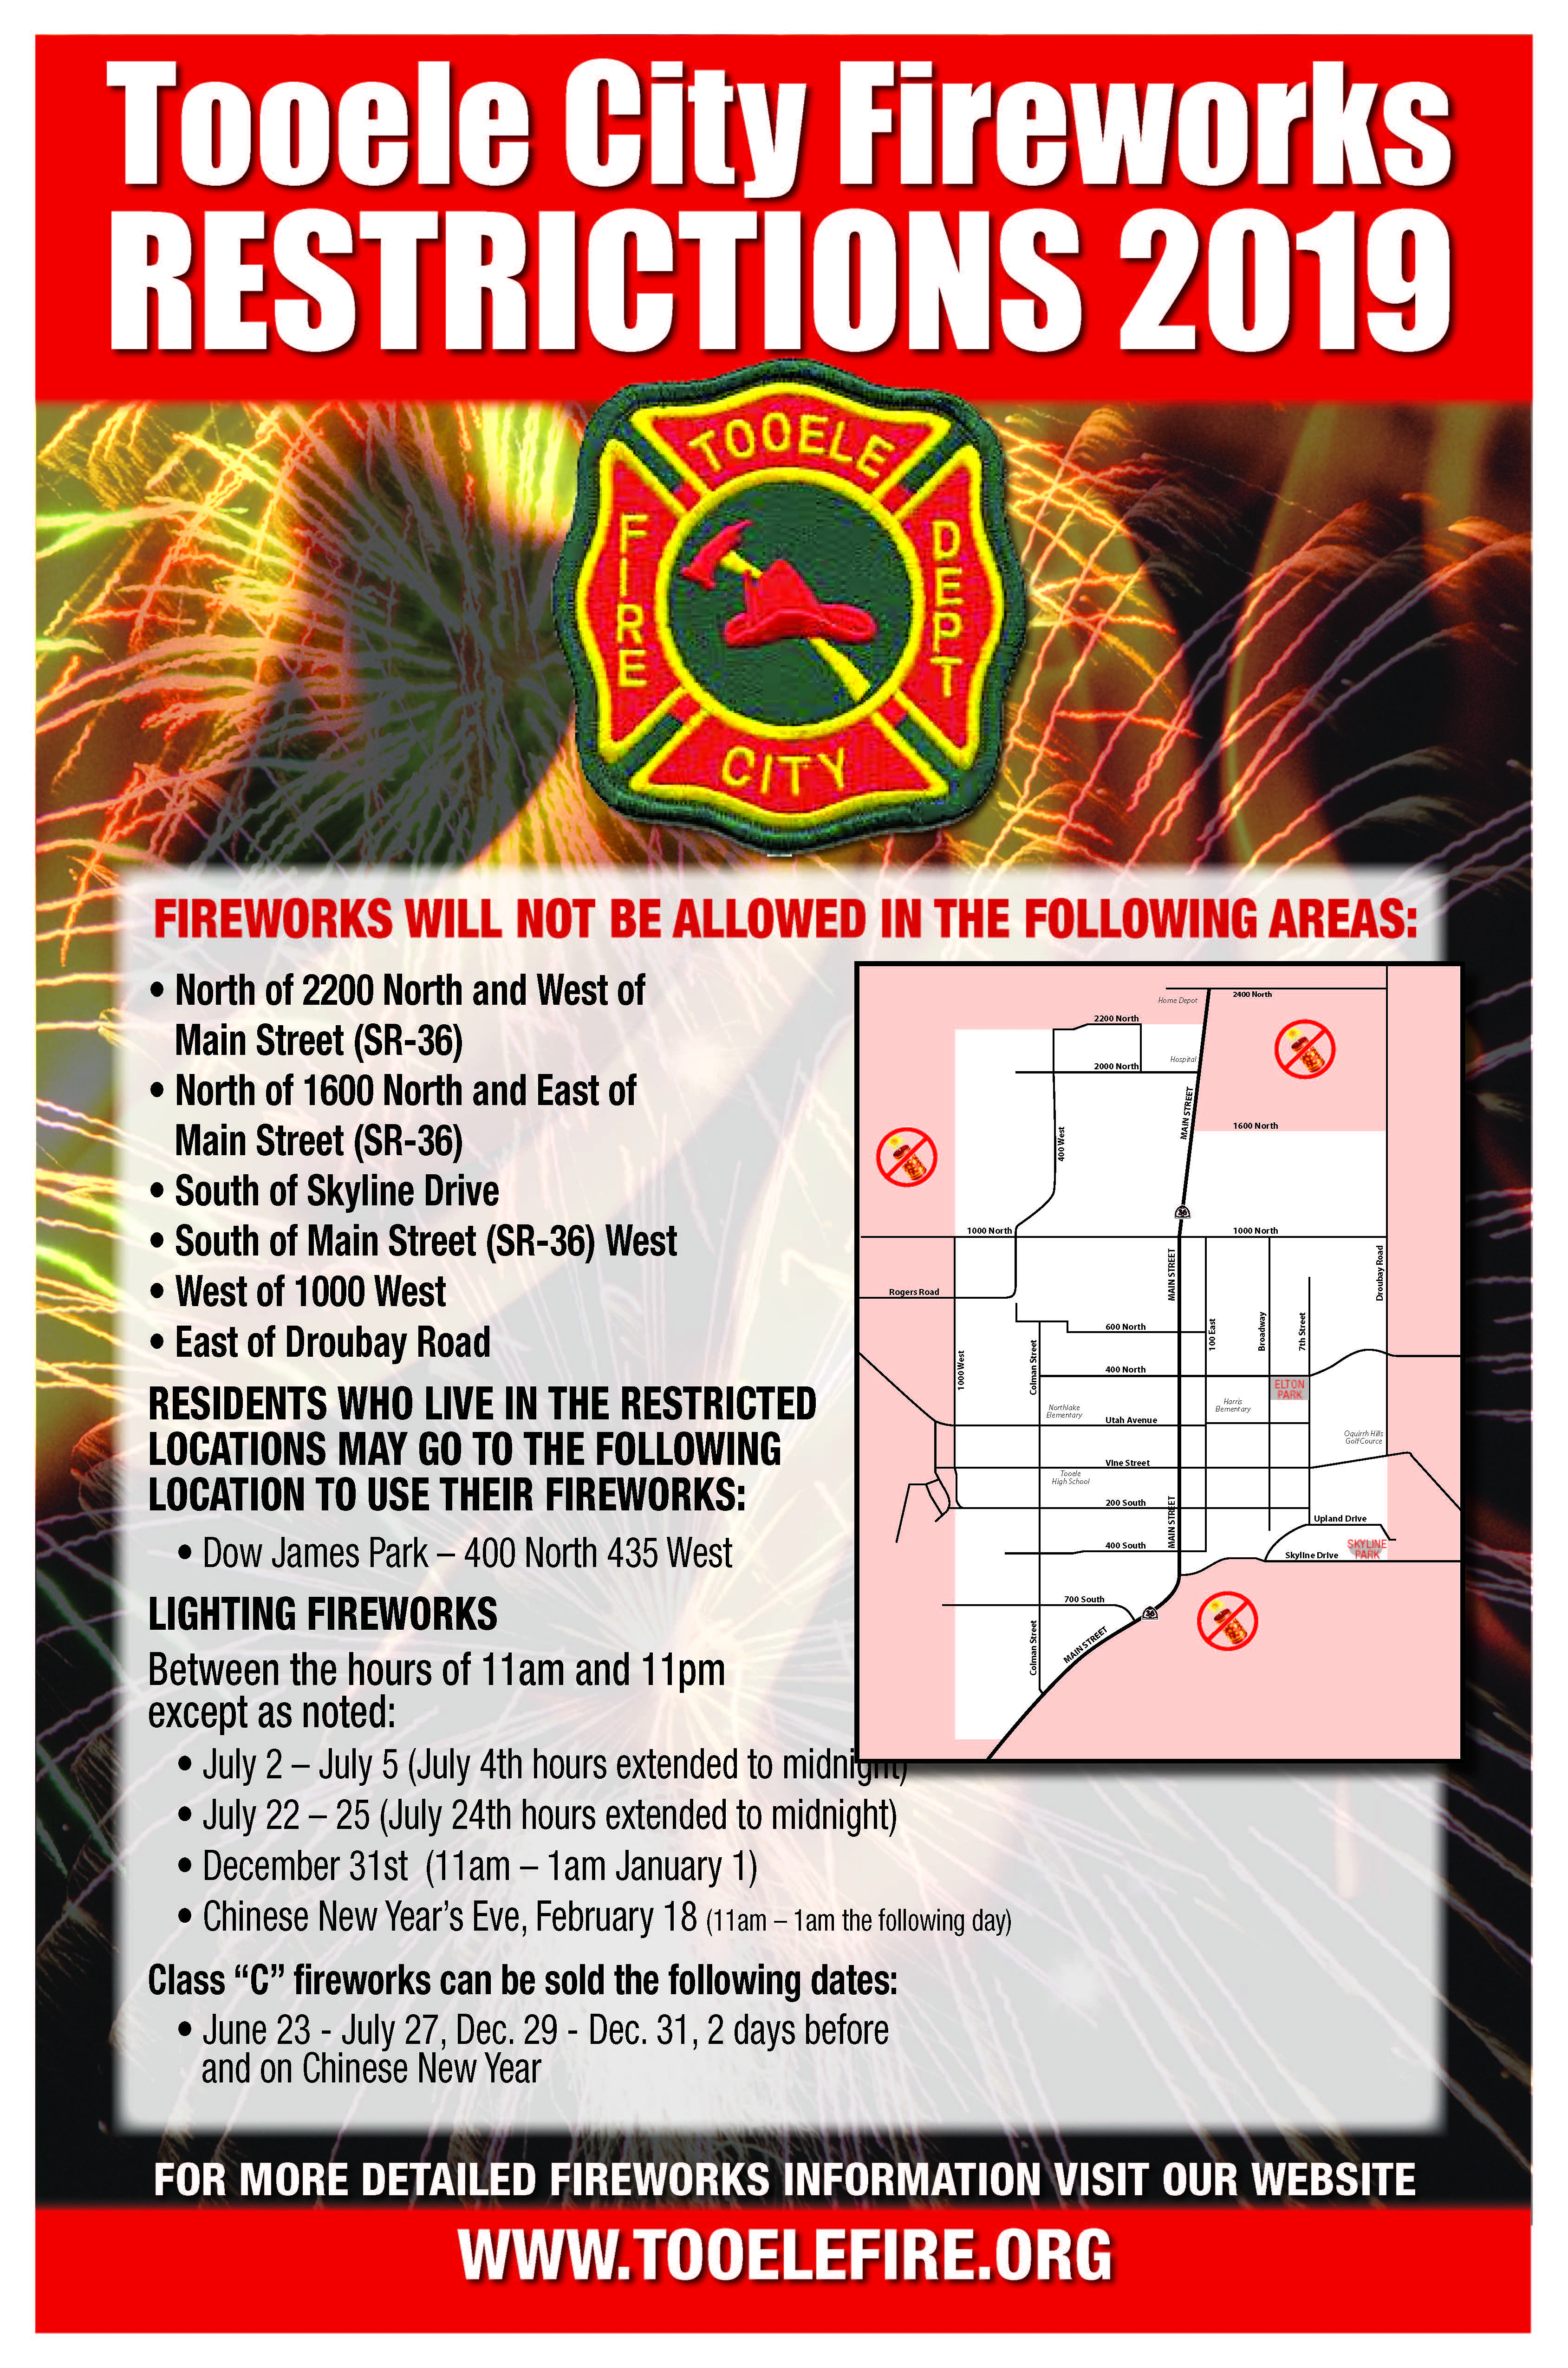 Fire Restrictions 2019